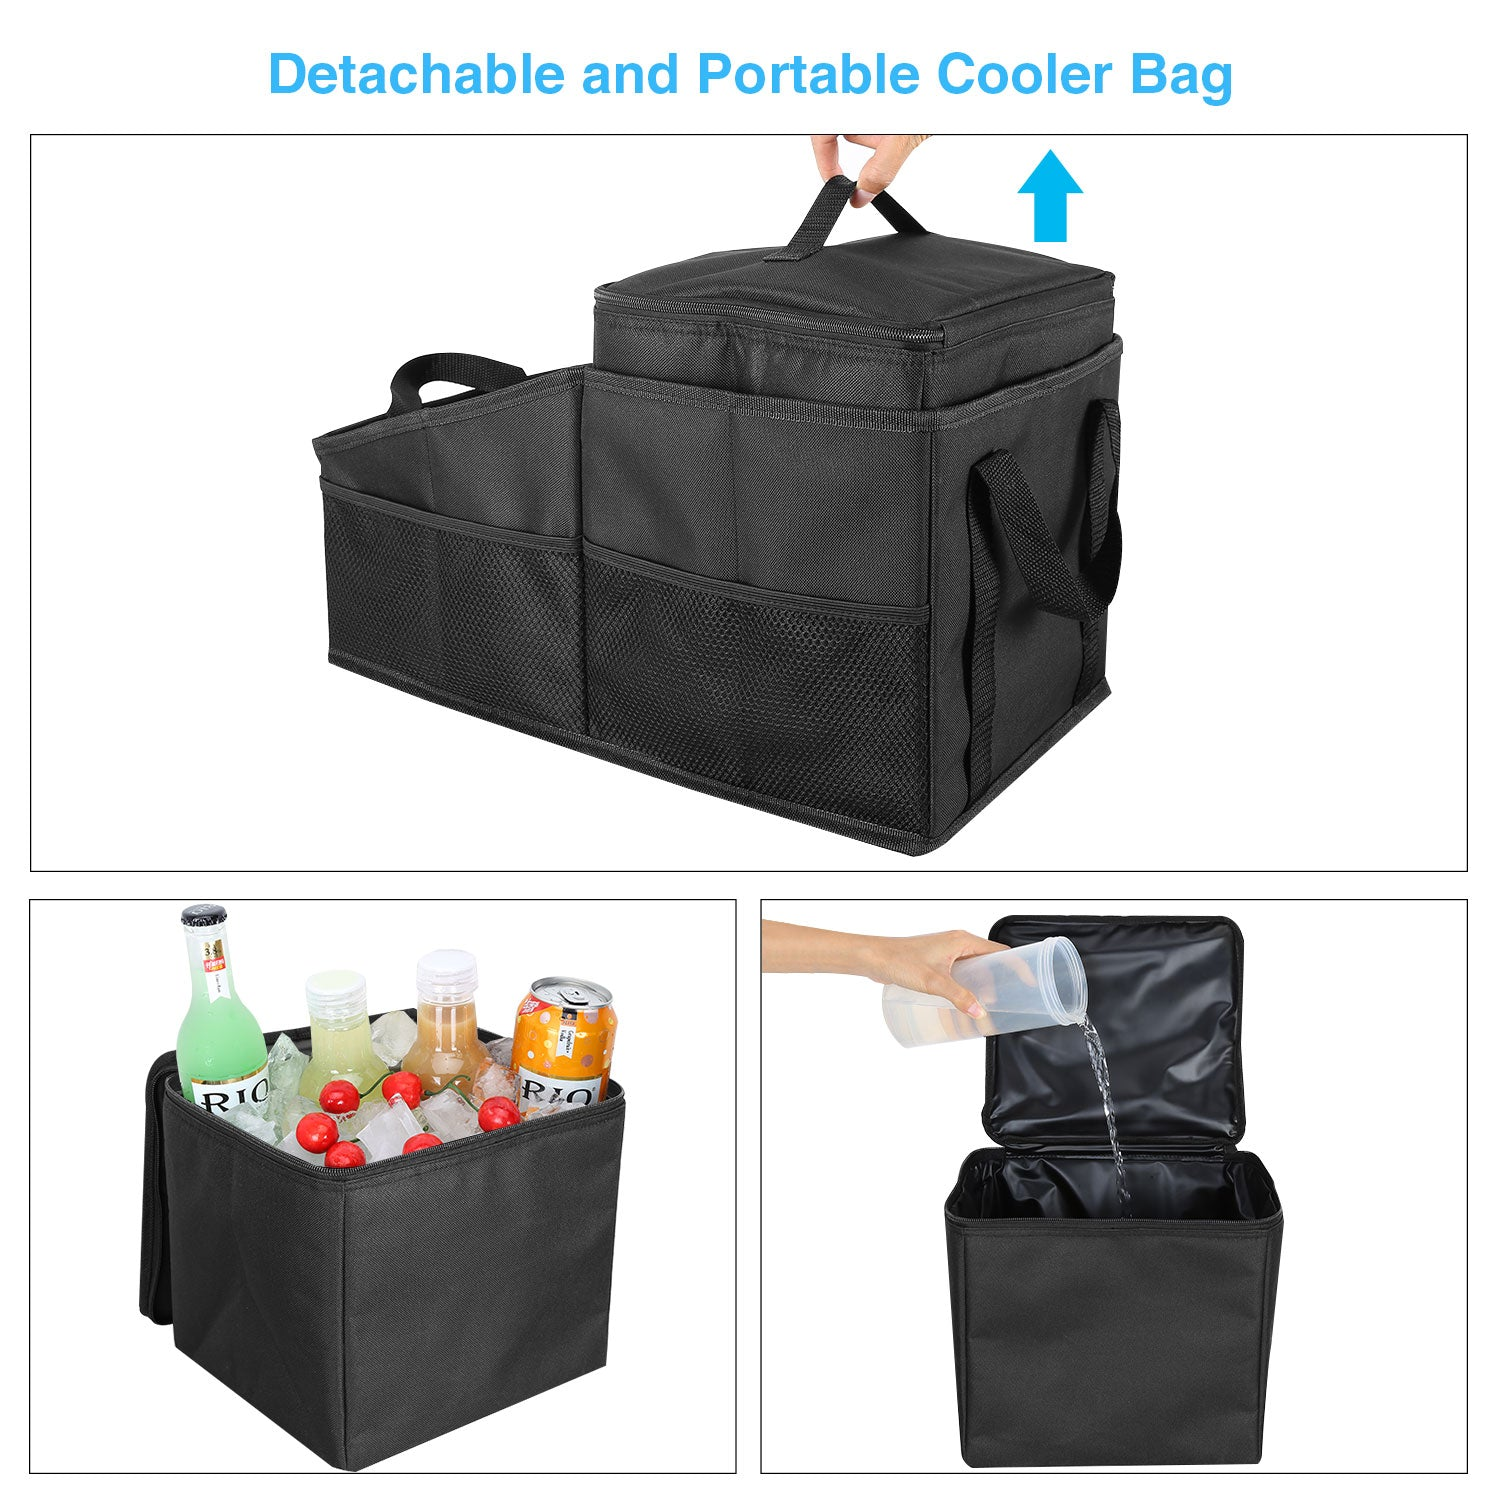 Foldable Car Front Seat Organizer with Detachable Leakproof Cooler Bag/Car Console Organizer Storage Bins Box with Divider Compartment Featuring 6 Outside Mesh Pockets, Road Trip Essentials